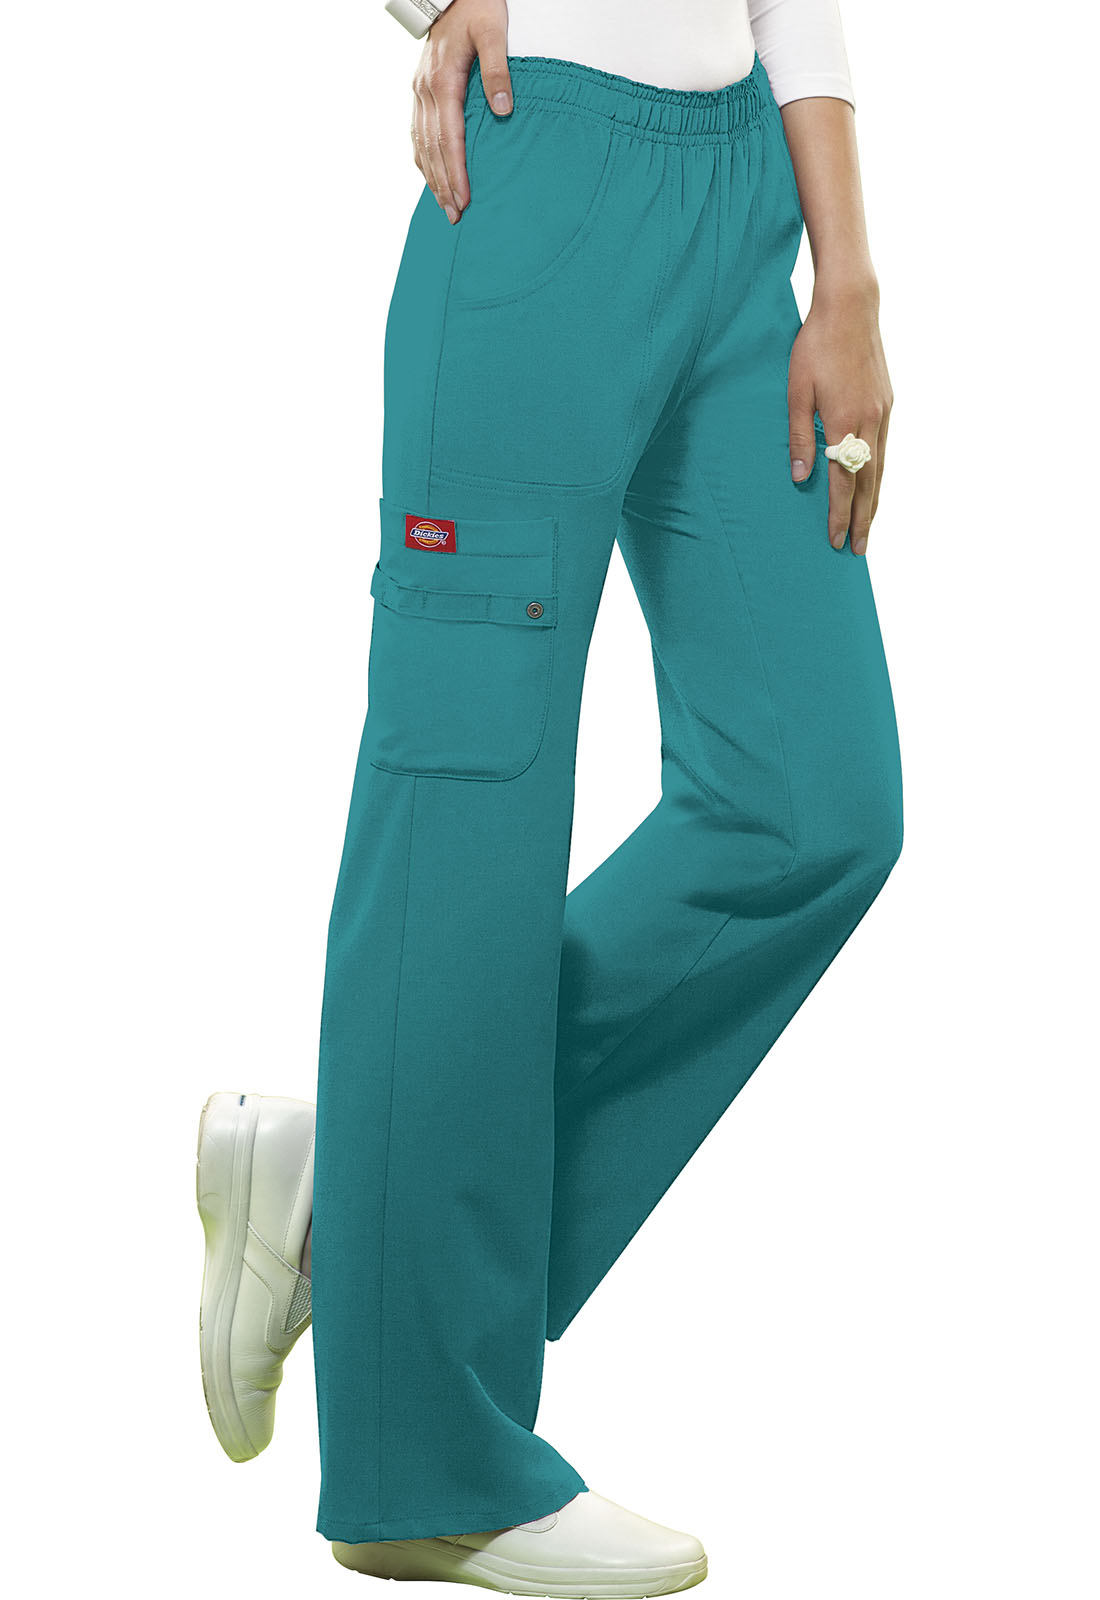 e10a74b61a3 Xtreme Stretch Mid Rise Pull-On Cargo Pant in Teal 82012-DTLZ from ...